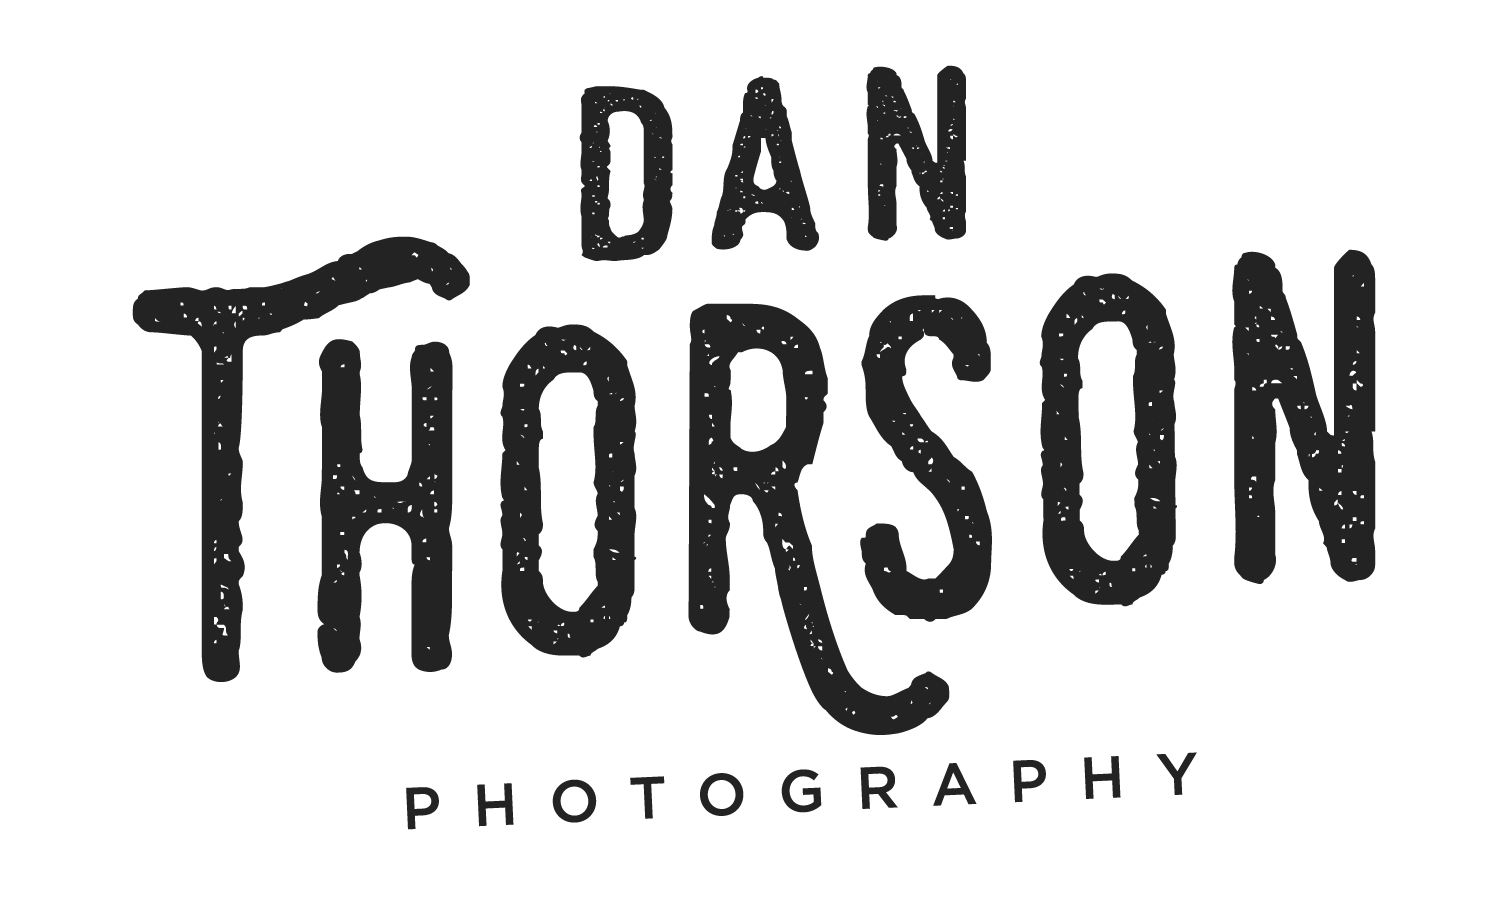 dan thorson photography